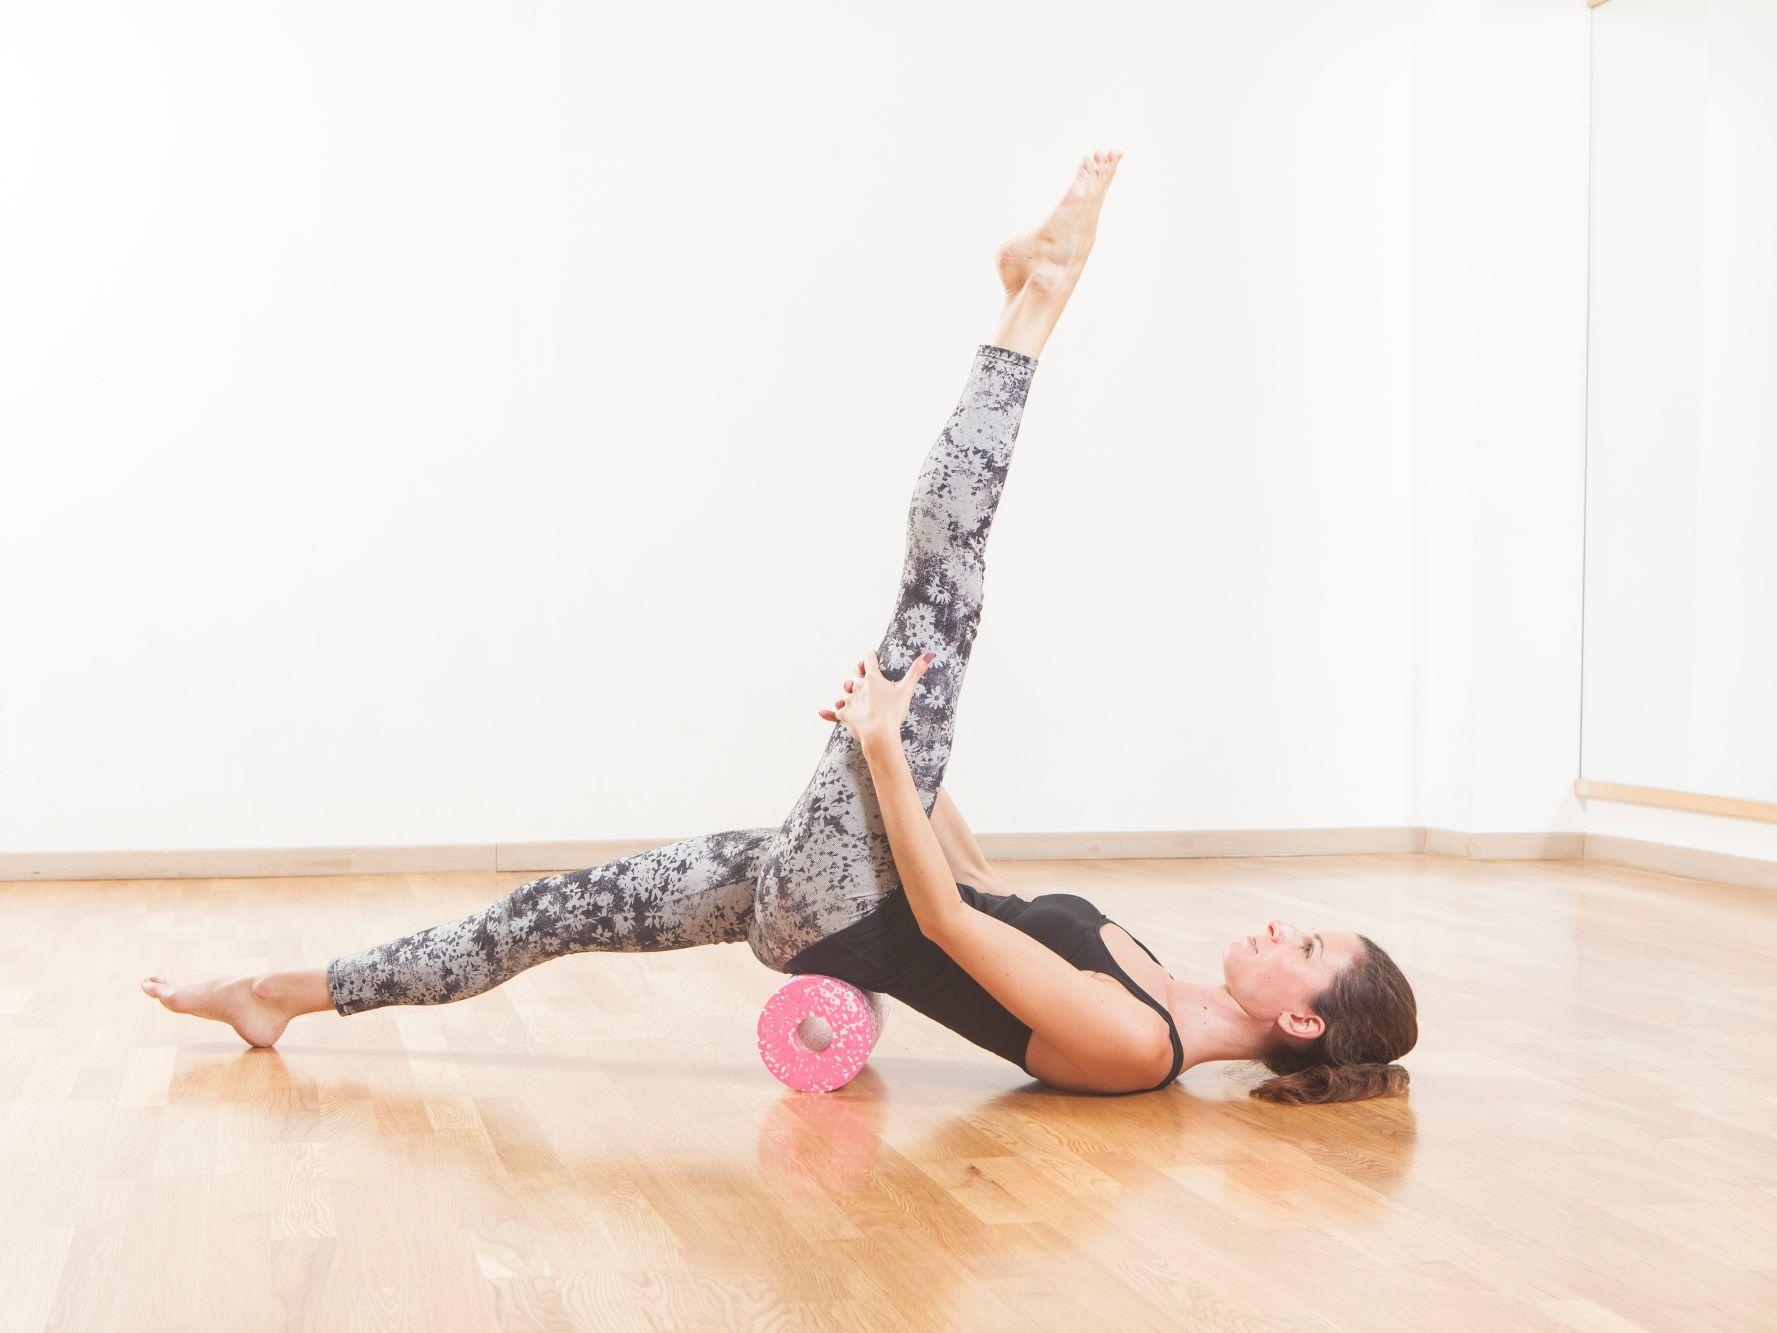 Women on foam roller doing yoga pose